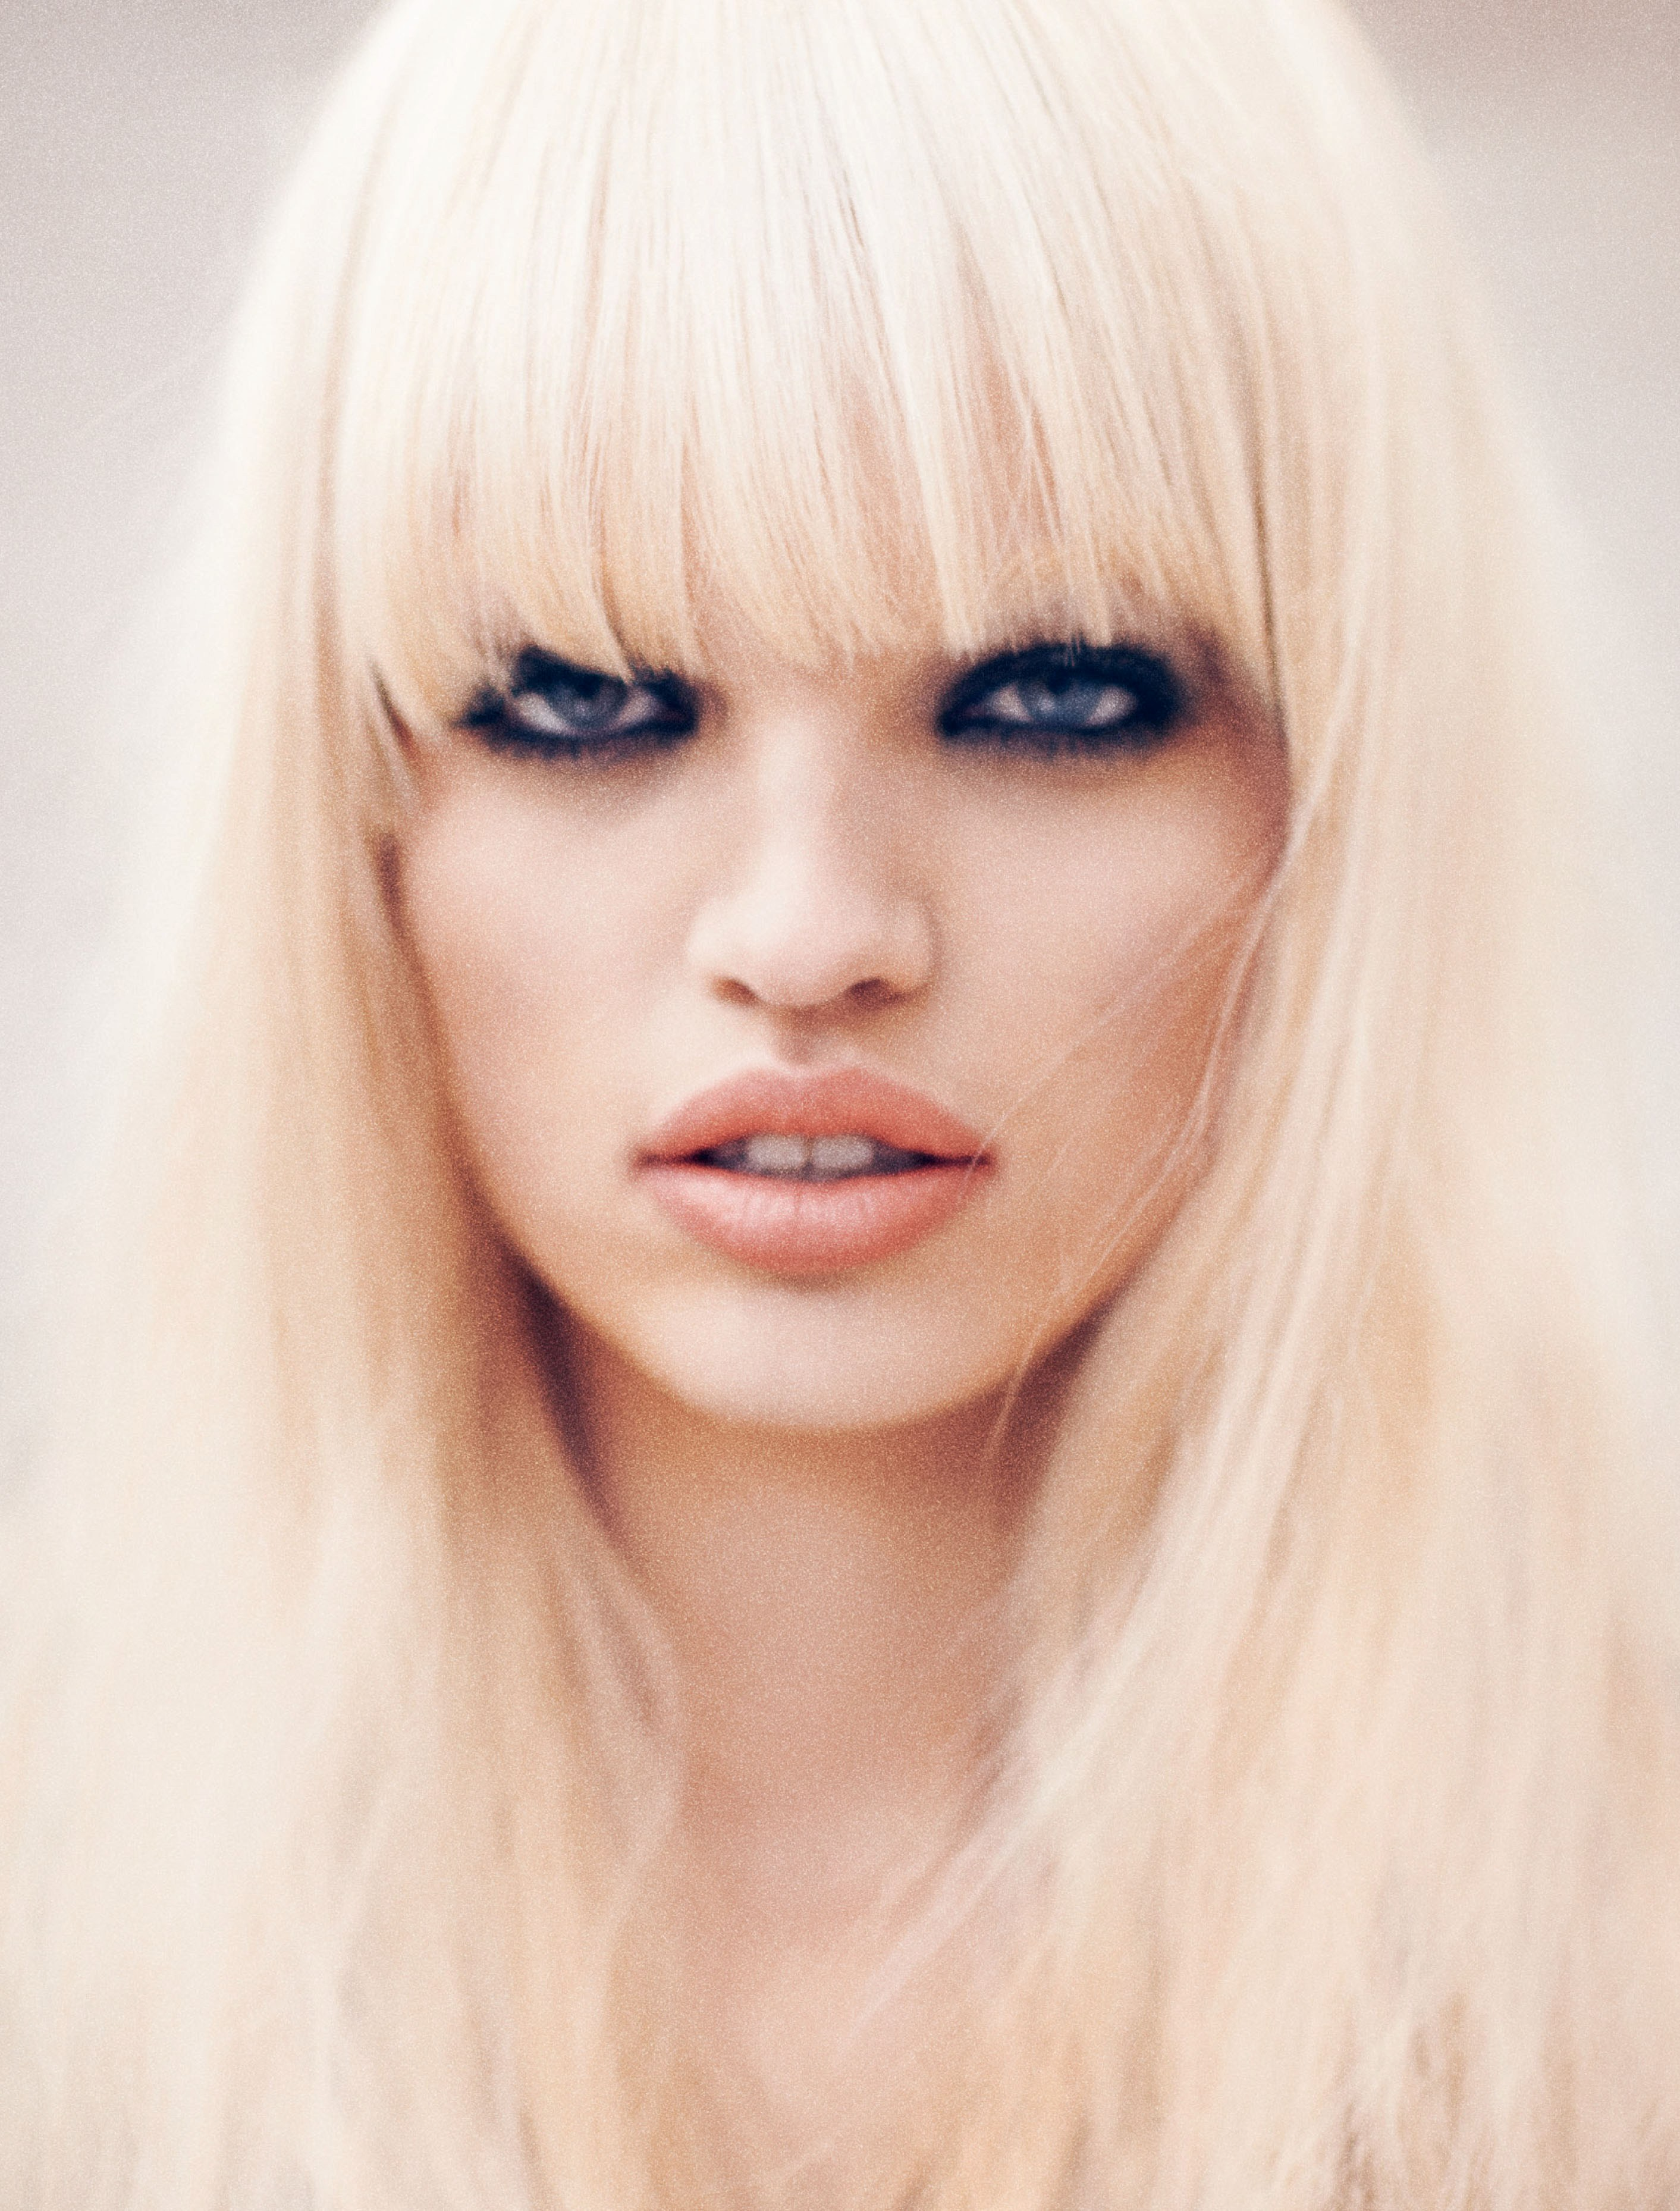 Daphne Groeneveld Daphne Groeneveld photo gallery 78 high quality pics of